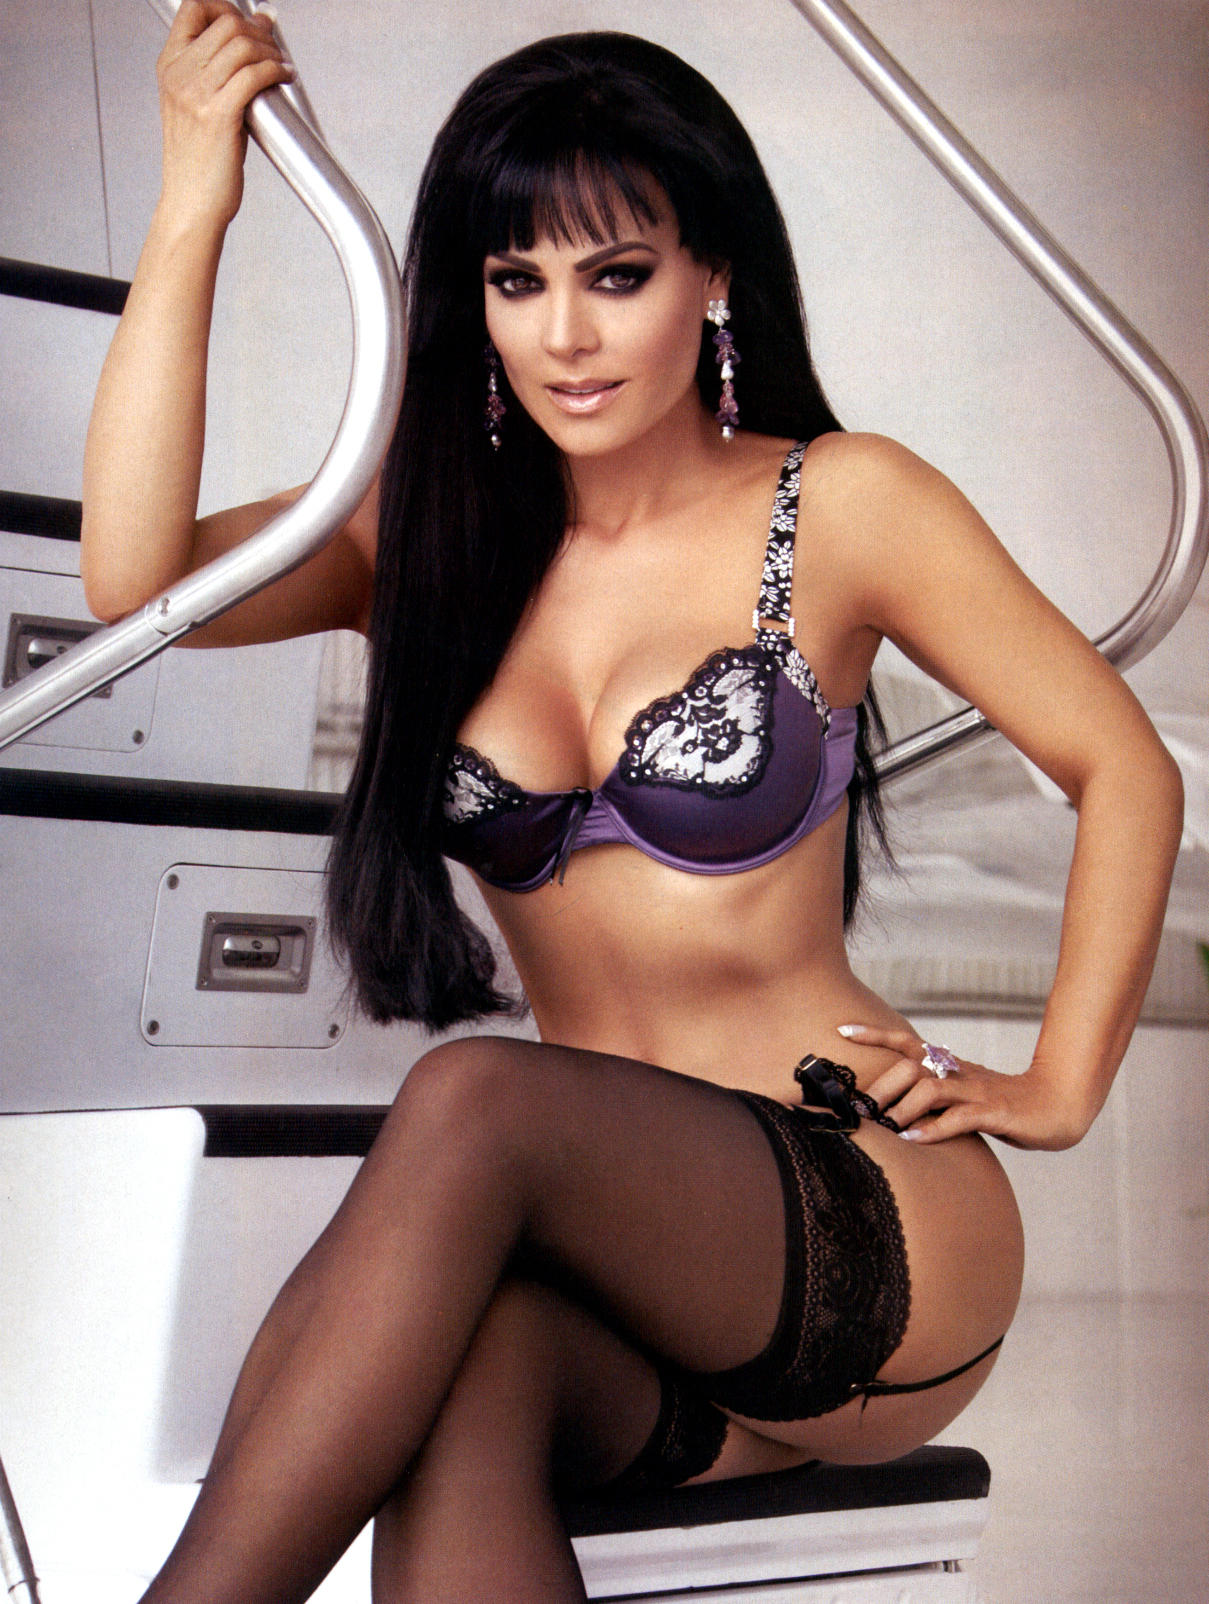 maribelMaribel Guardia4